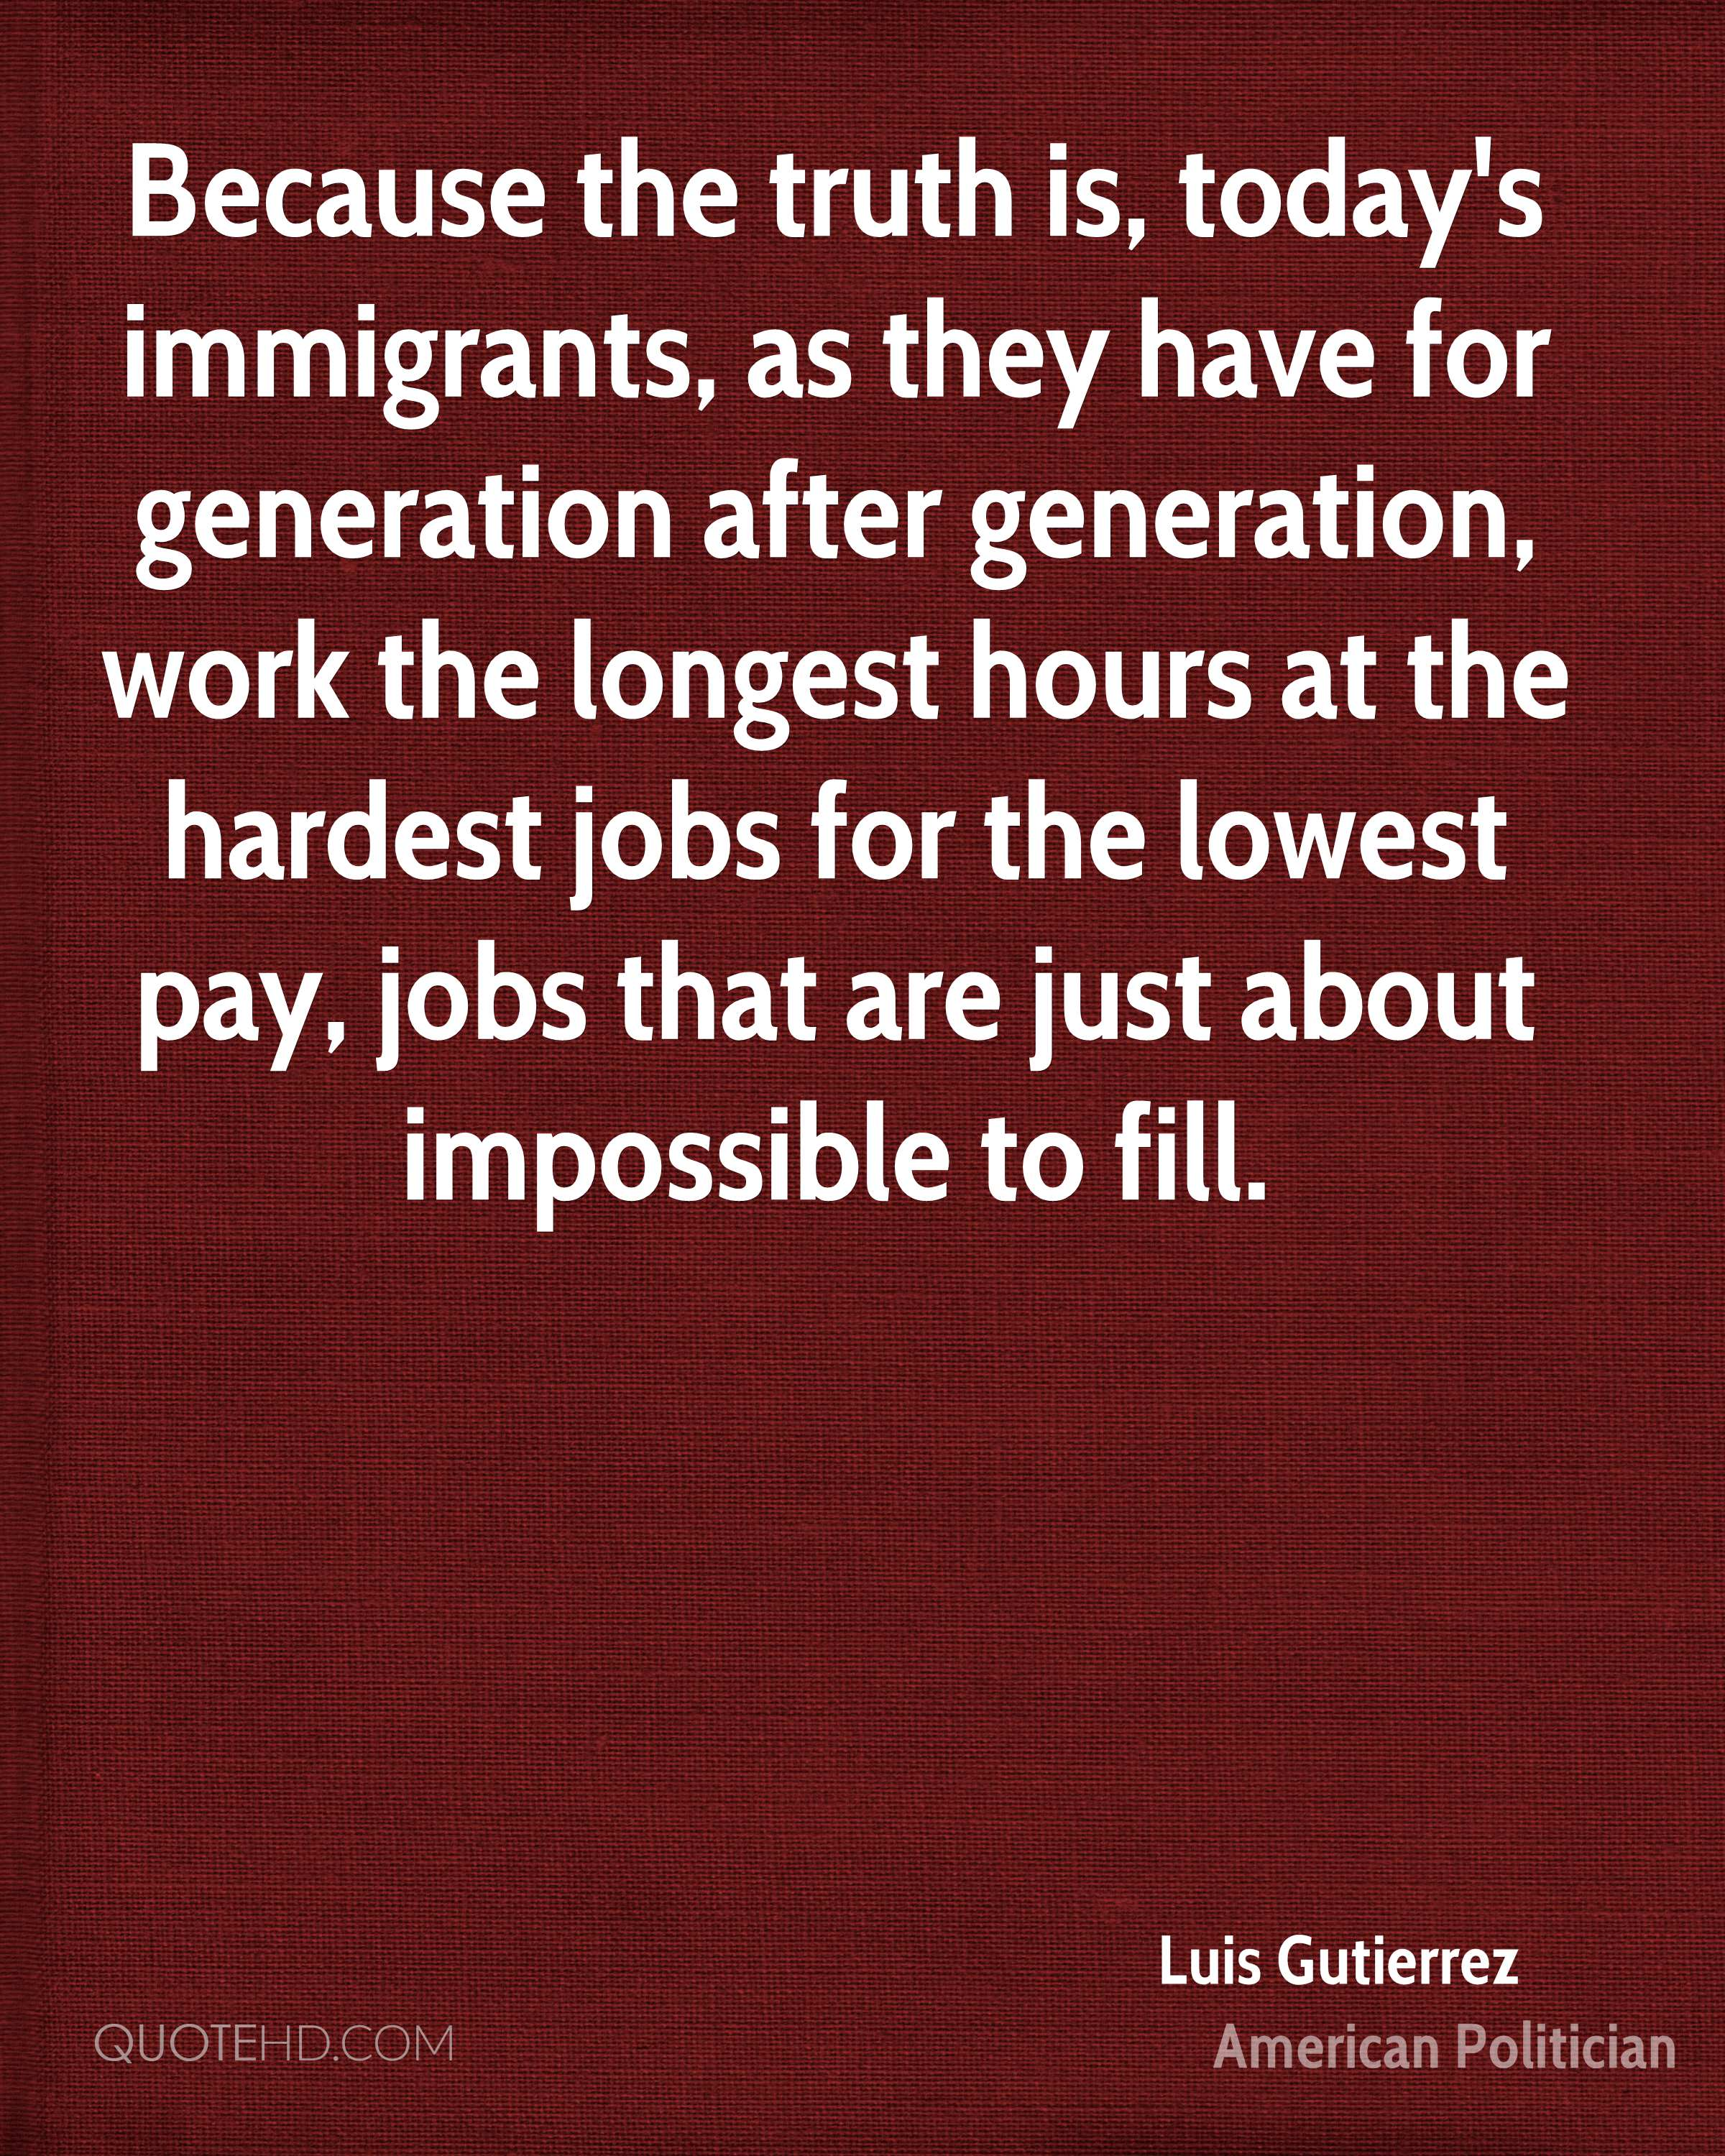 Because the truth is, today's immigrants, as they have for generation after generation, work the longest hours at the hardest jobs for the lowest pay, jobs that are just about impossible to fill.